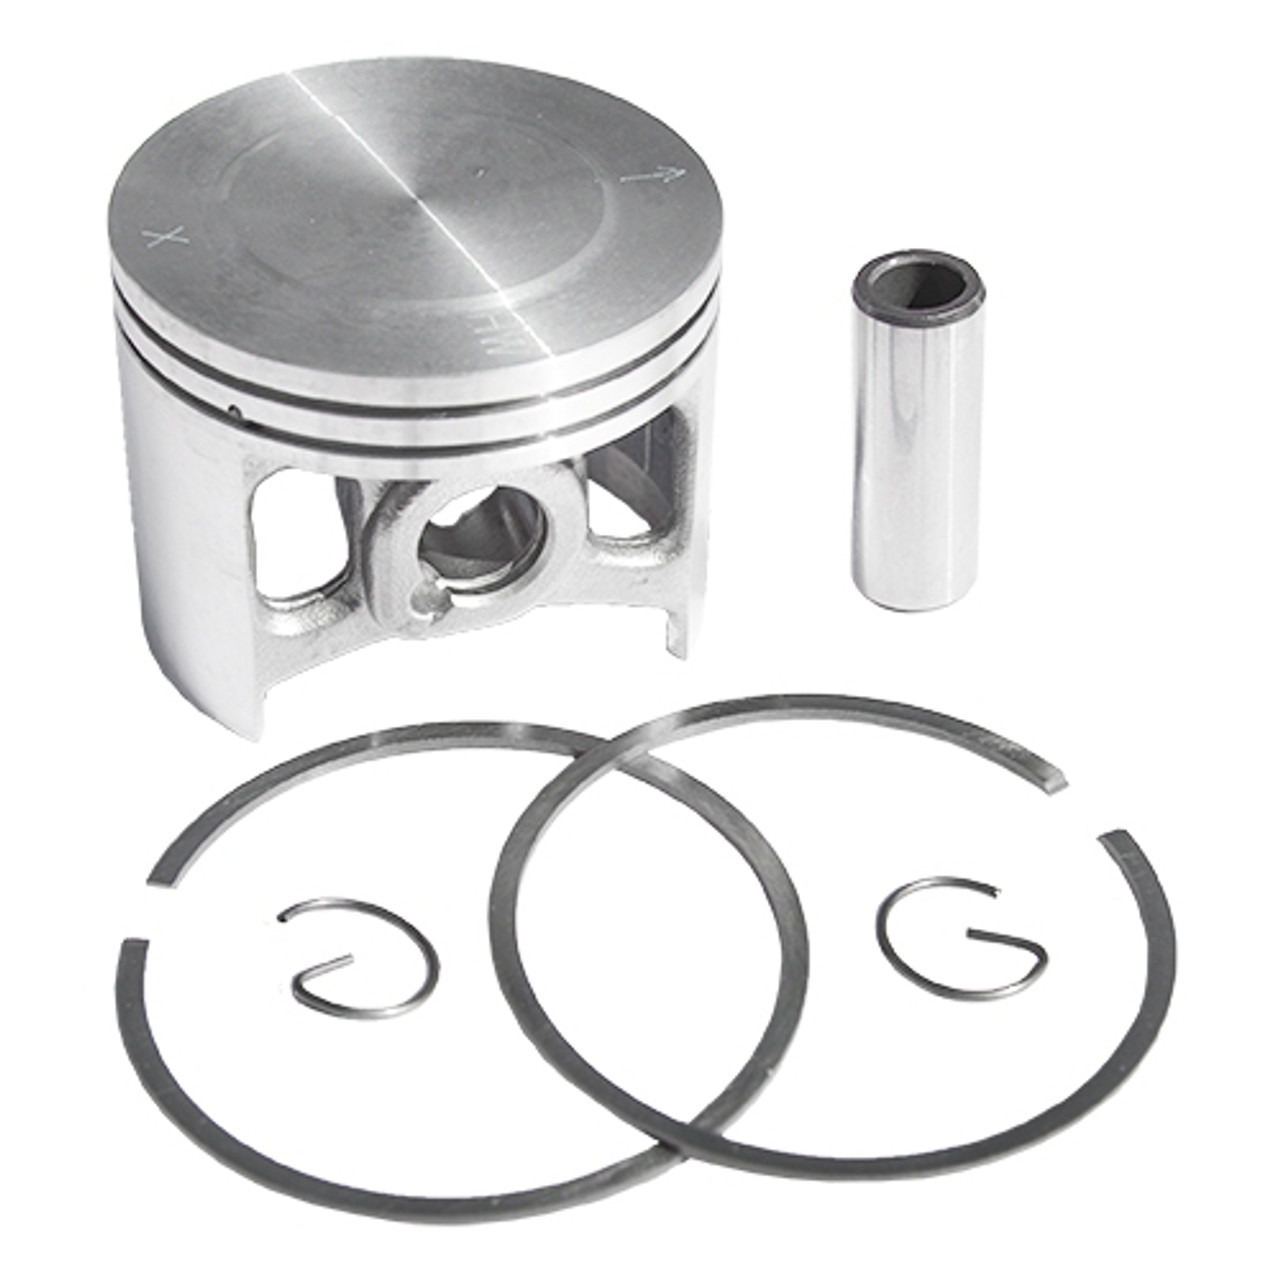 Stihl 066, Ms 660 54Mm Hyway Pop-Up Piston And Rings 11220302005